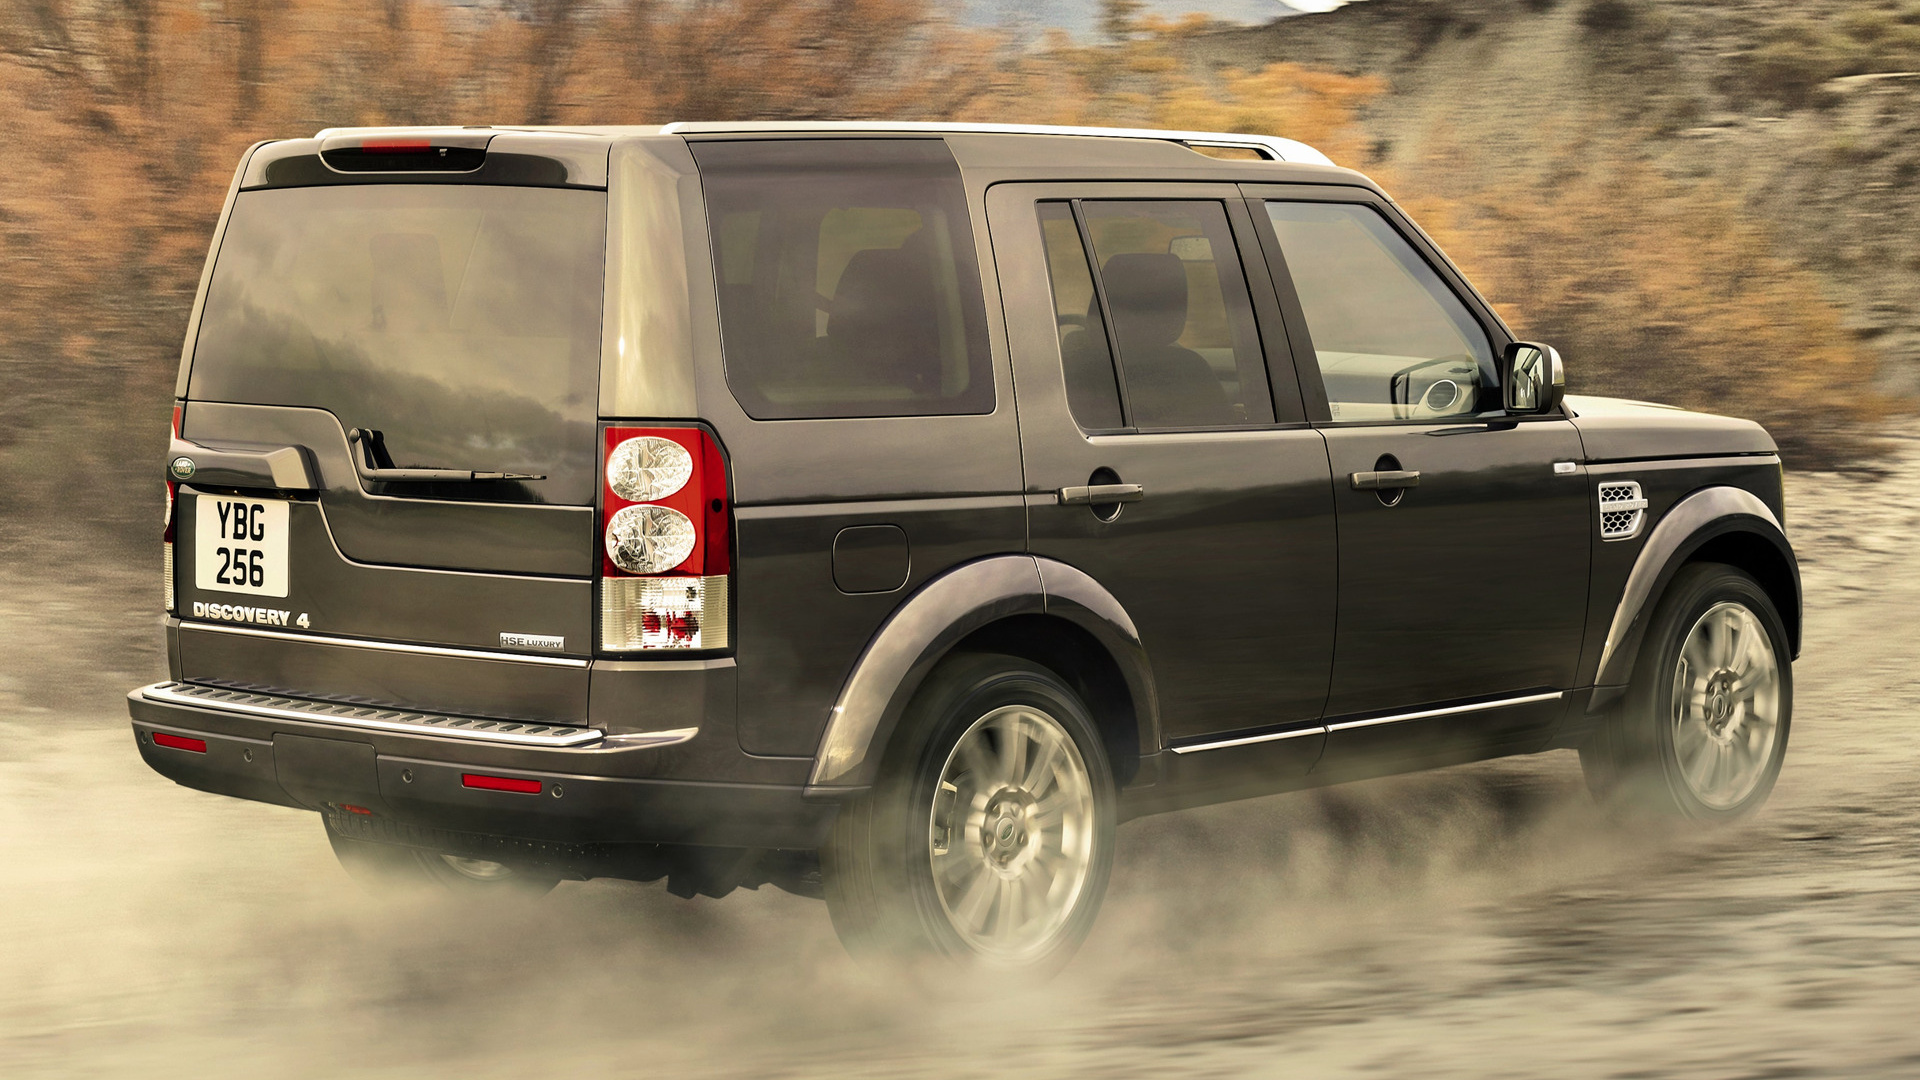 2012 land rover discovery 4 hse luxury wallpapers and hd. Black Bedroom Furniture Sets. Home Design Ideas